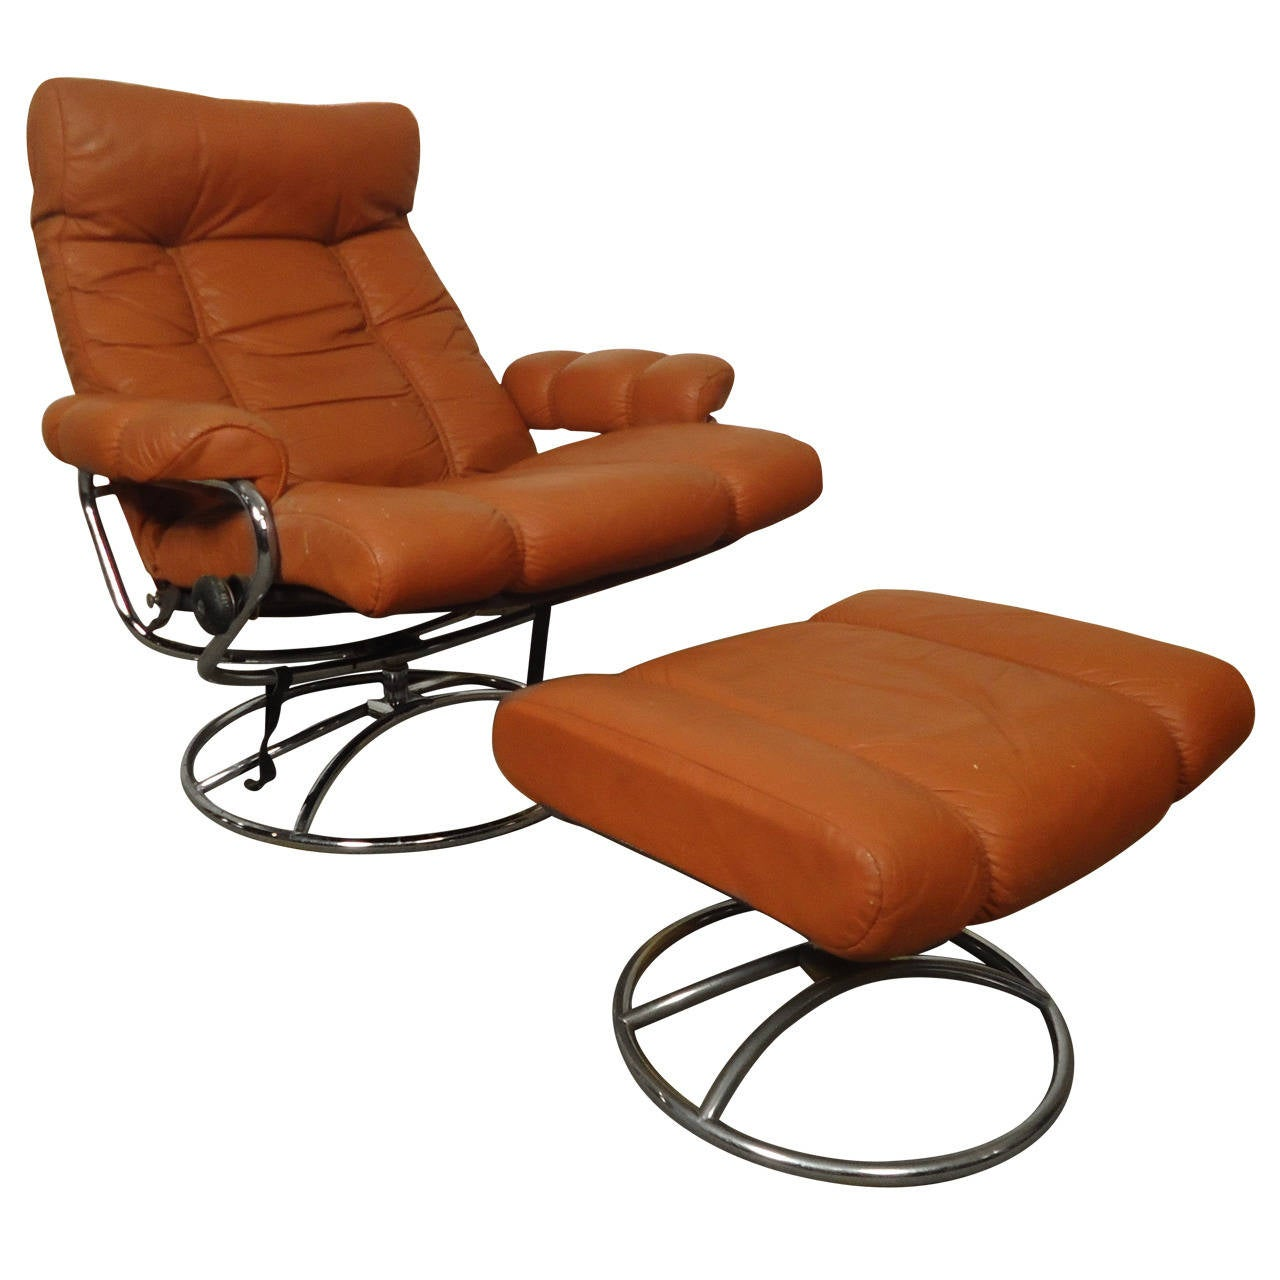 Ekornes Stressless Mid Century Reclining Chair And Ottoman By Ekornes Stressless